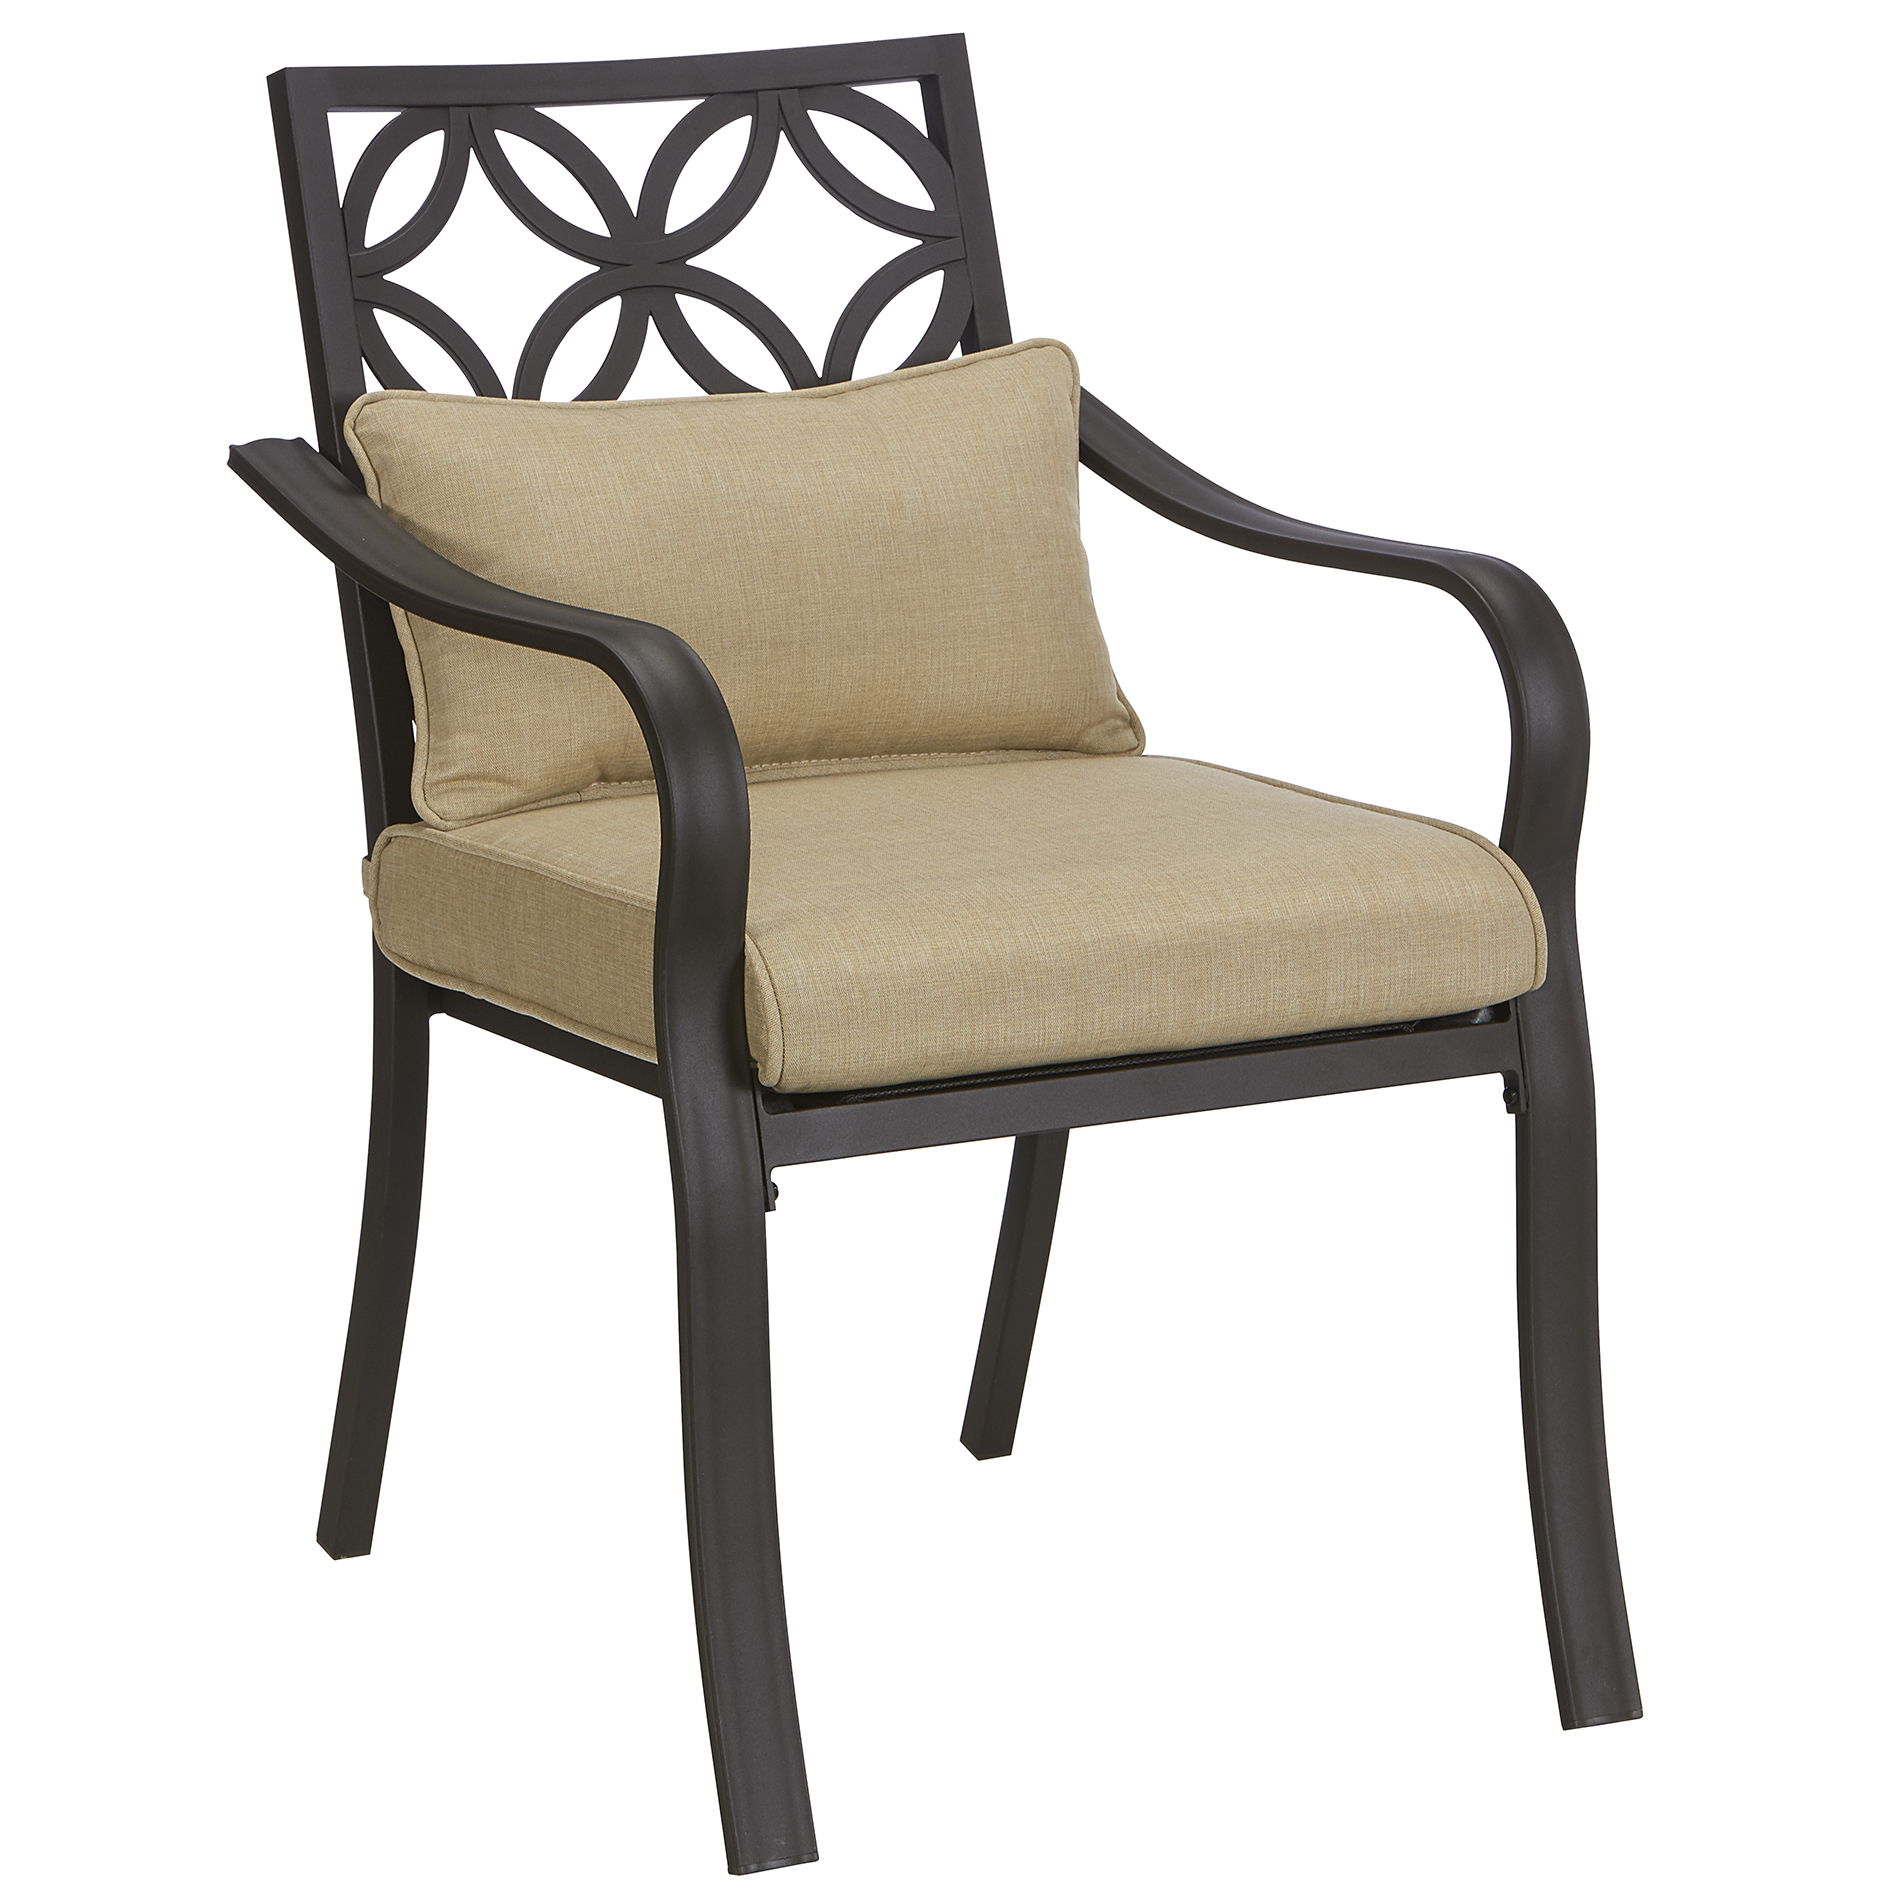 dining chair cushions kmart desk mesh seat jaclyn smith marion 4 cushion chairs neutral